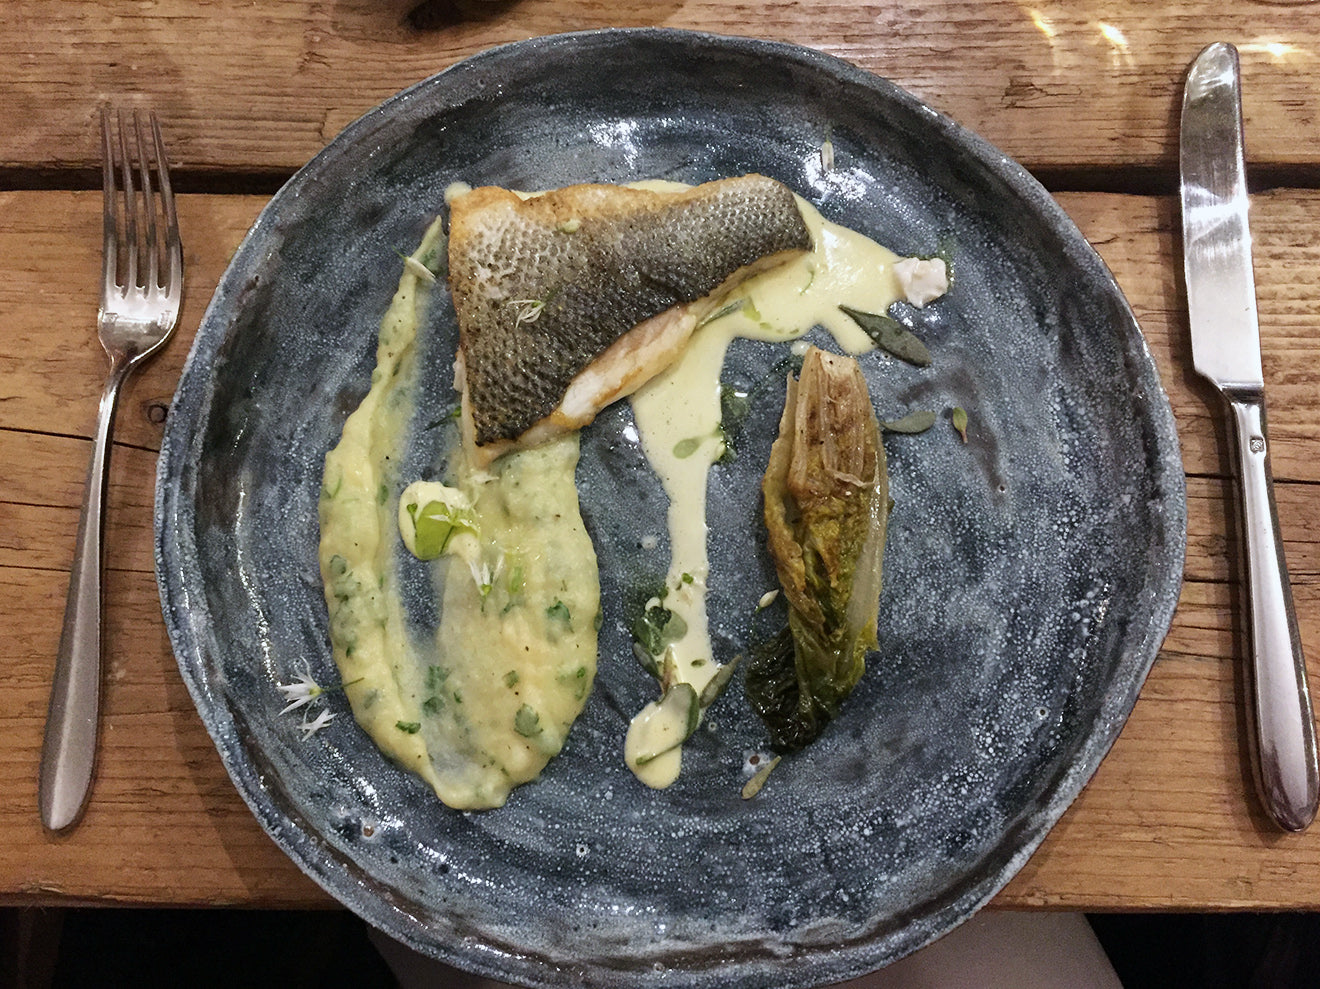 Pop up restaurant review Bert & May London